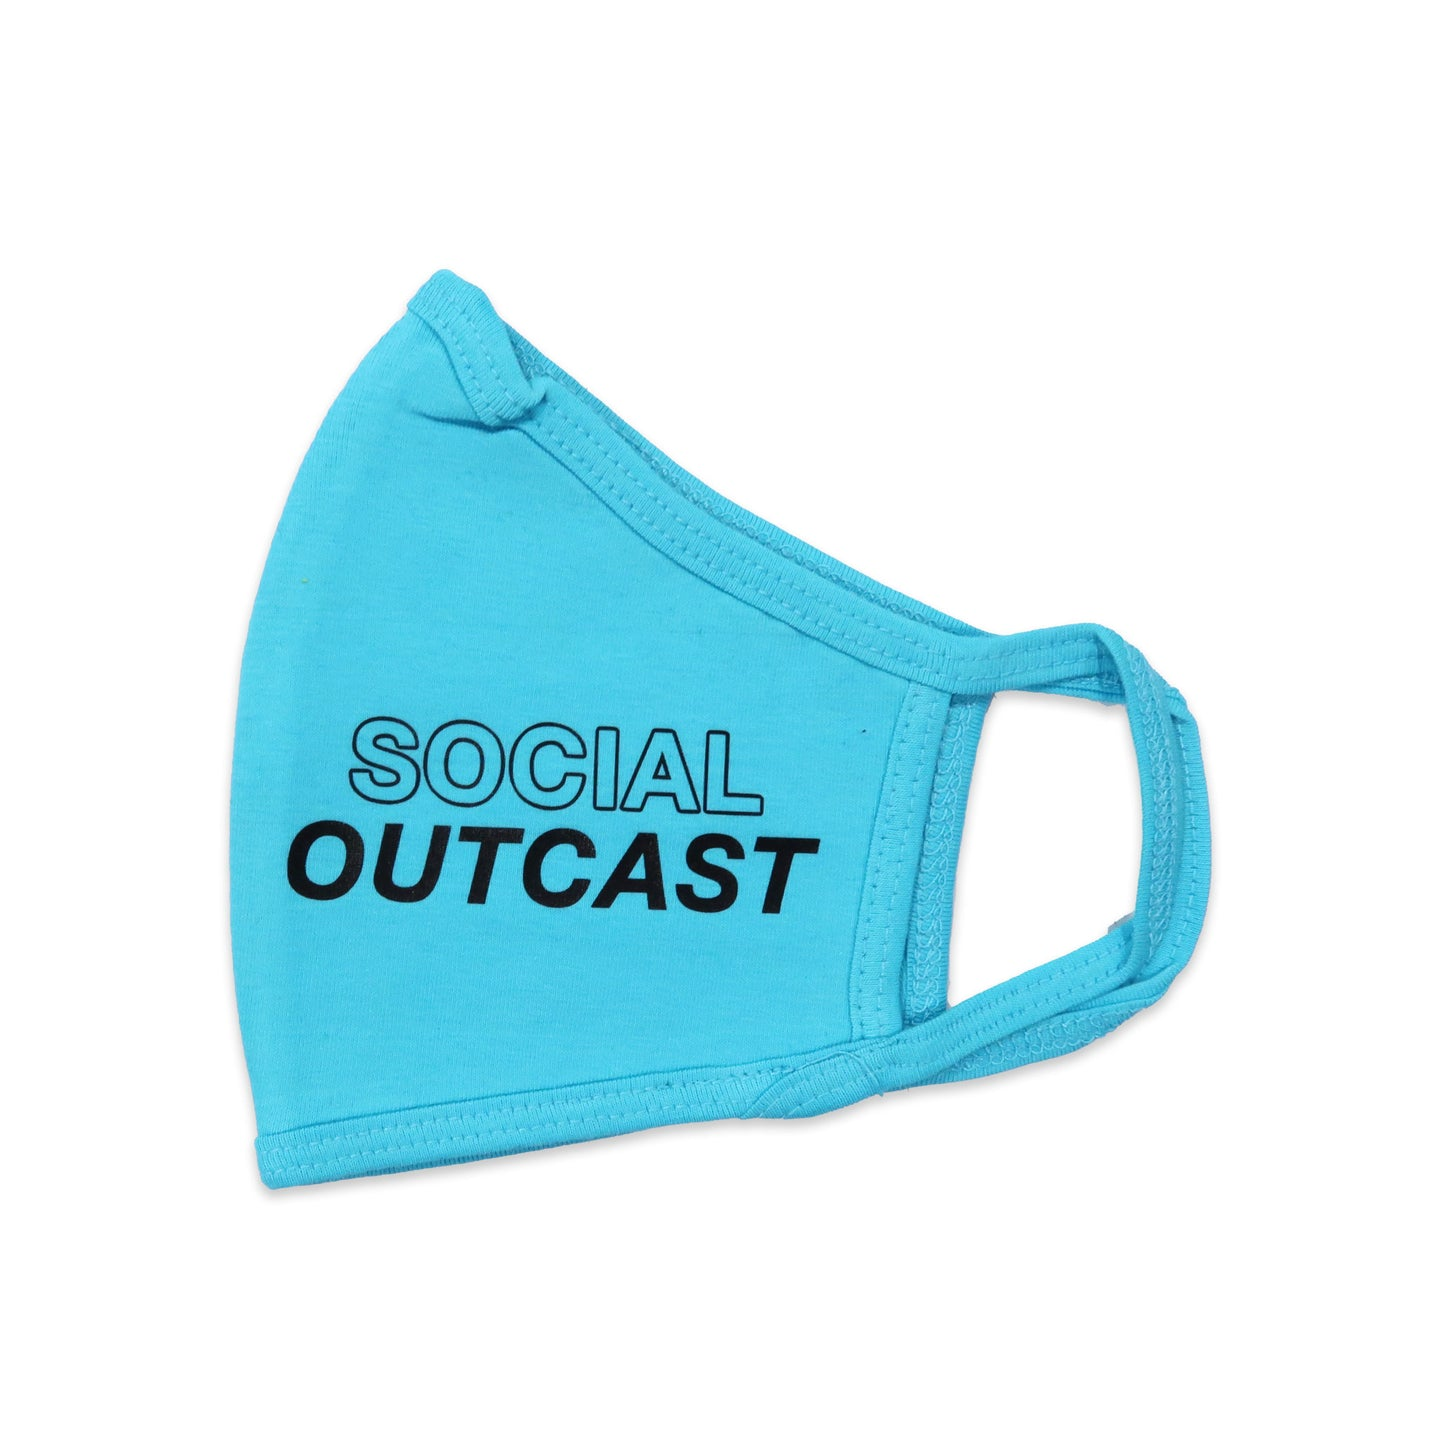 Social Outcast Face Mask in Blue and Black